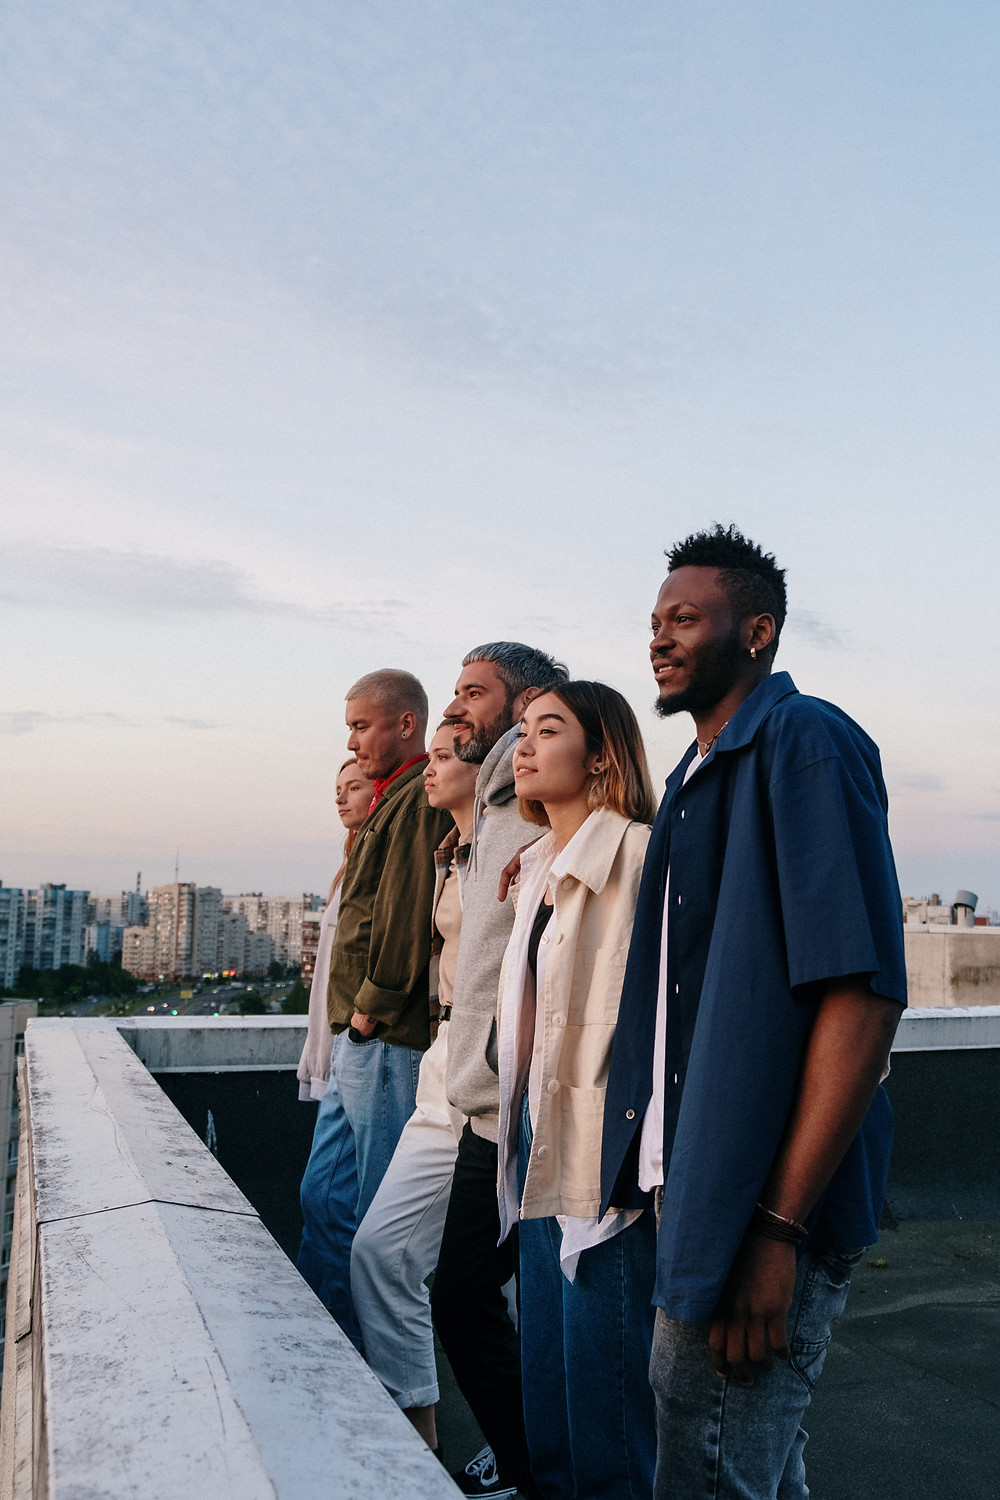 group of friends on top of a building looking at the view